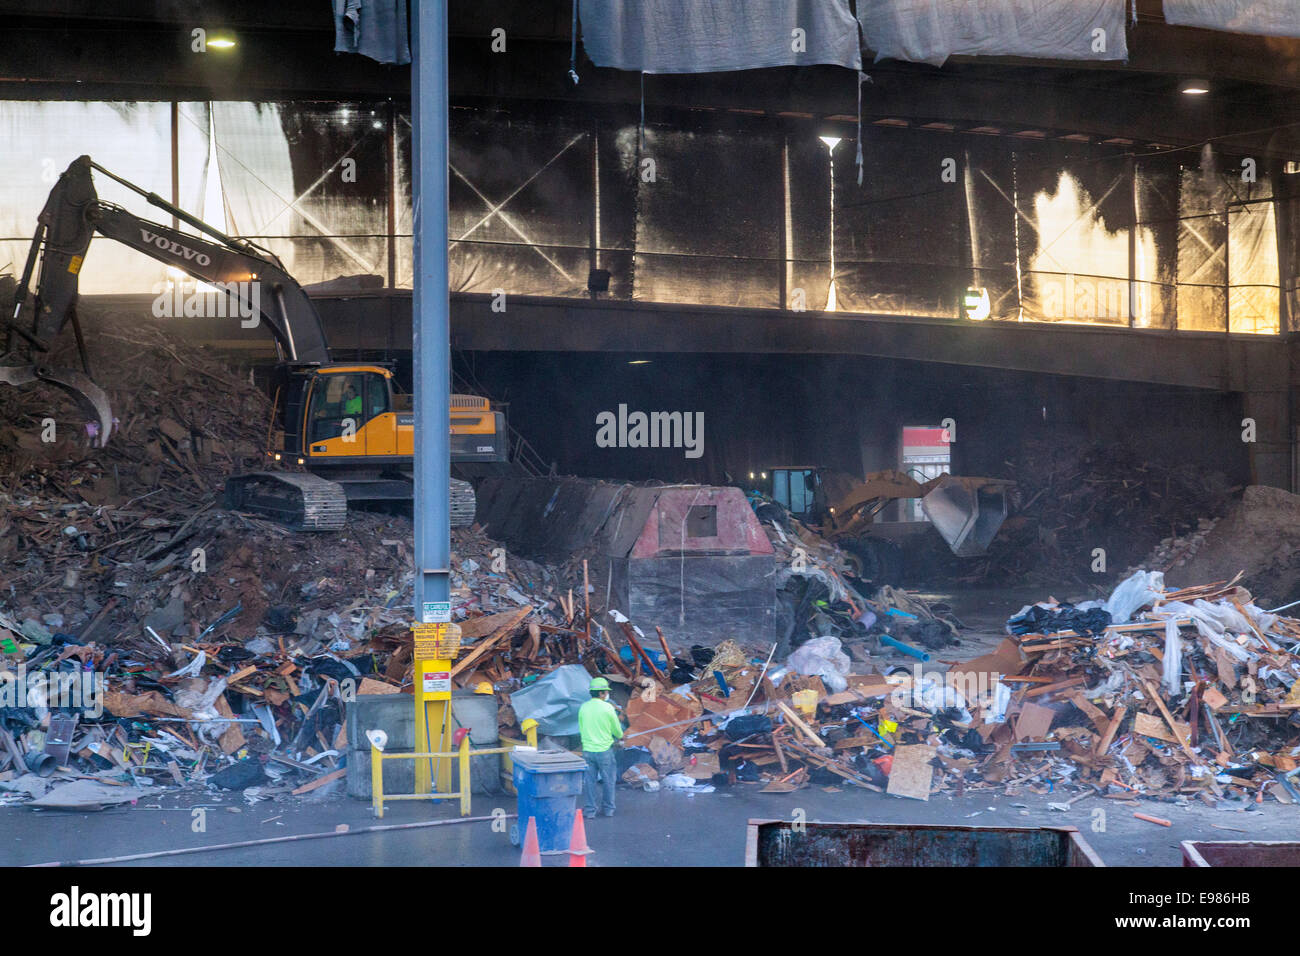 Garbage being sorted by backhoe, Downtown Los Angeles, California, USA - Stock Image